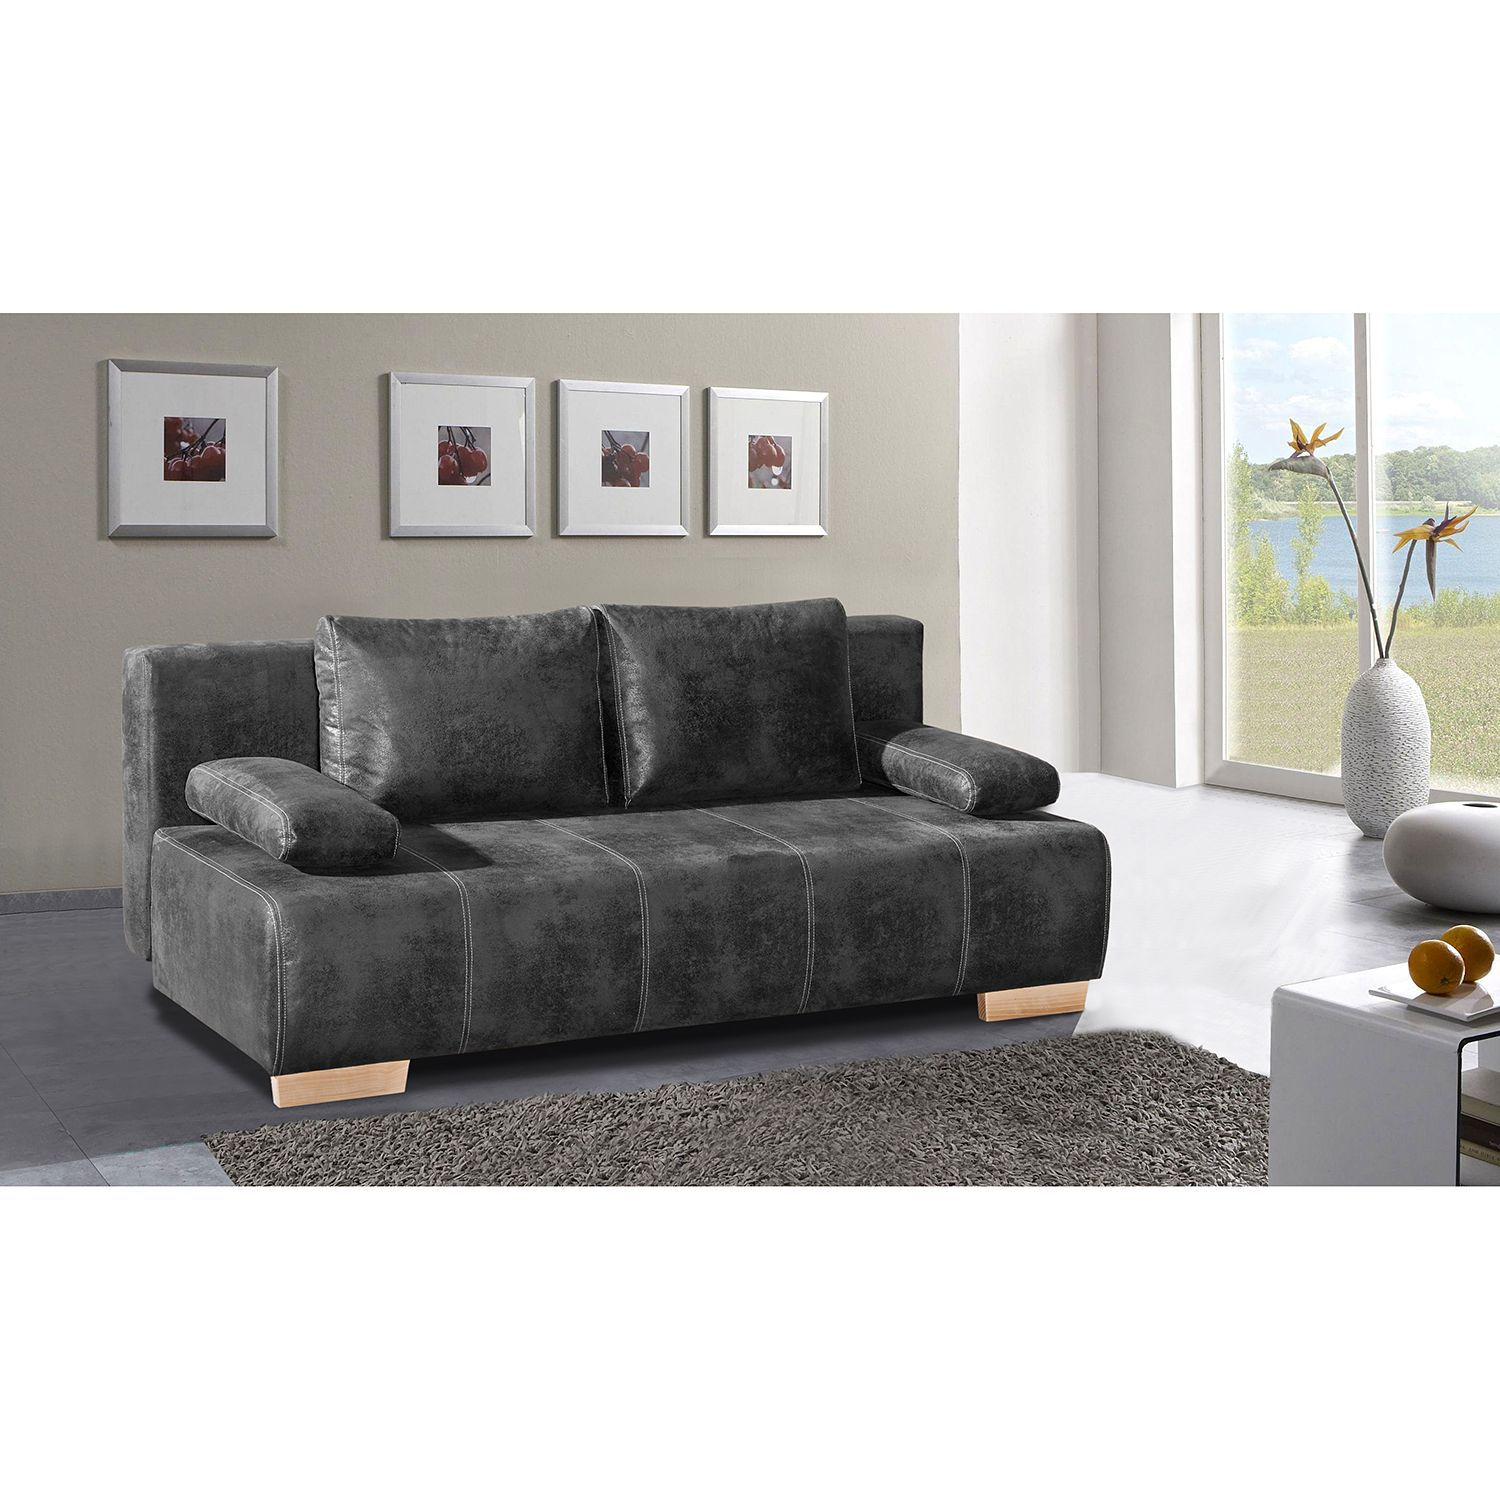 home24 Schlafsofa Ayban Antiklederlook